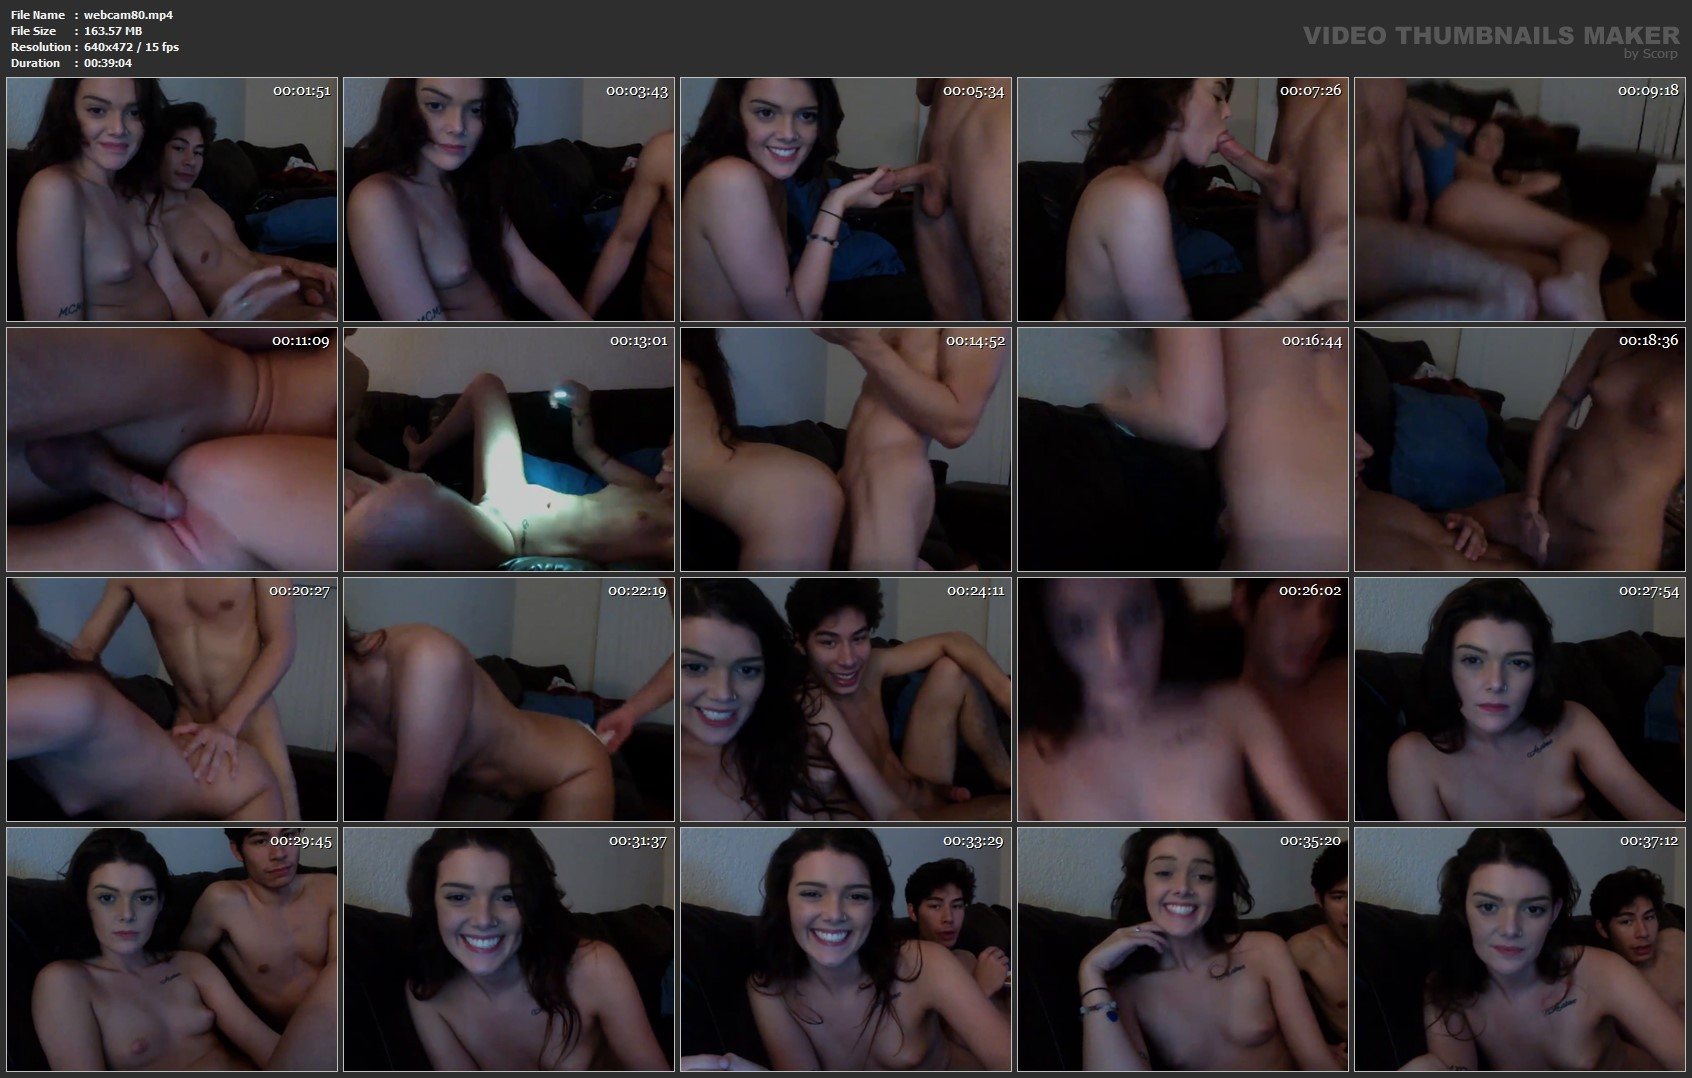 webcam80-mp4